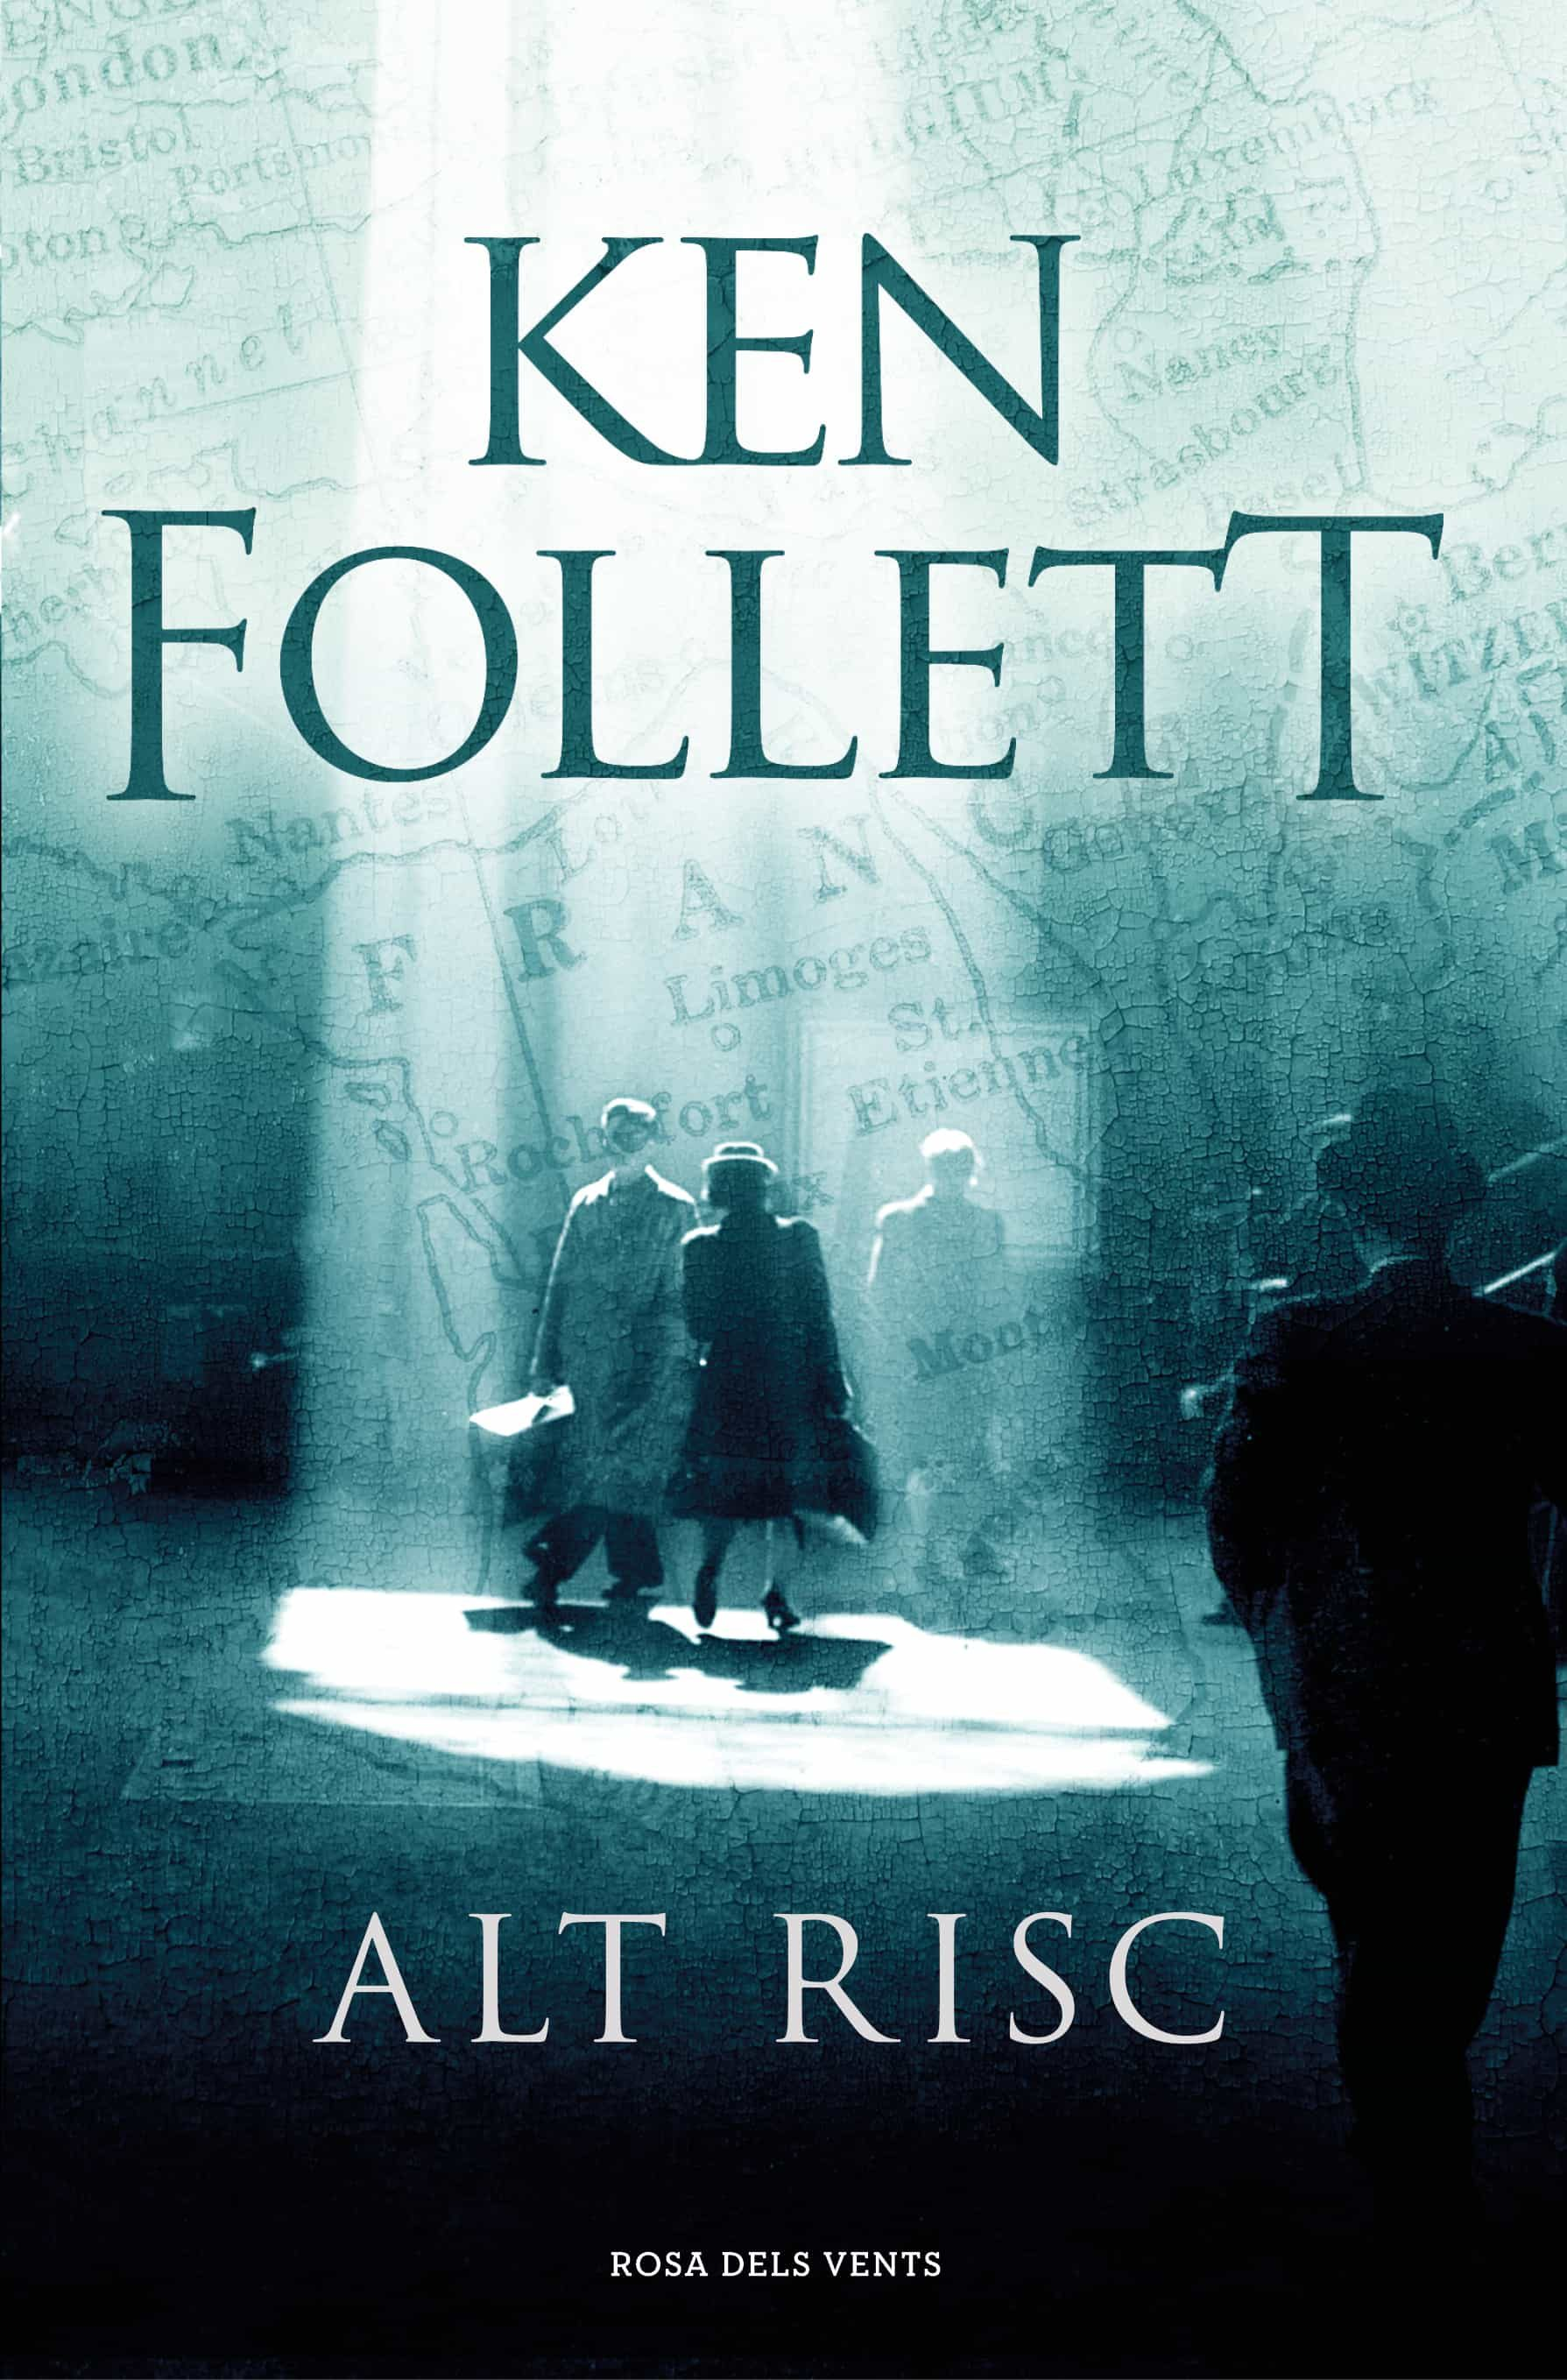 Descargar Libros Ken Follet Alt Risc Ebook Ken Follett Descargar Libro Pdf O Epub 9788416930647